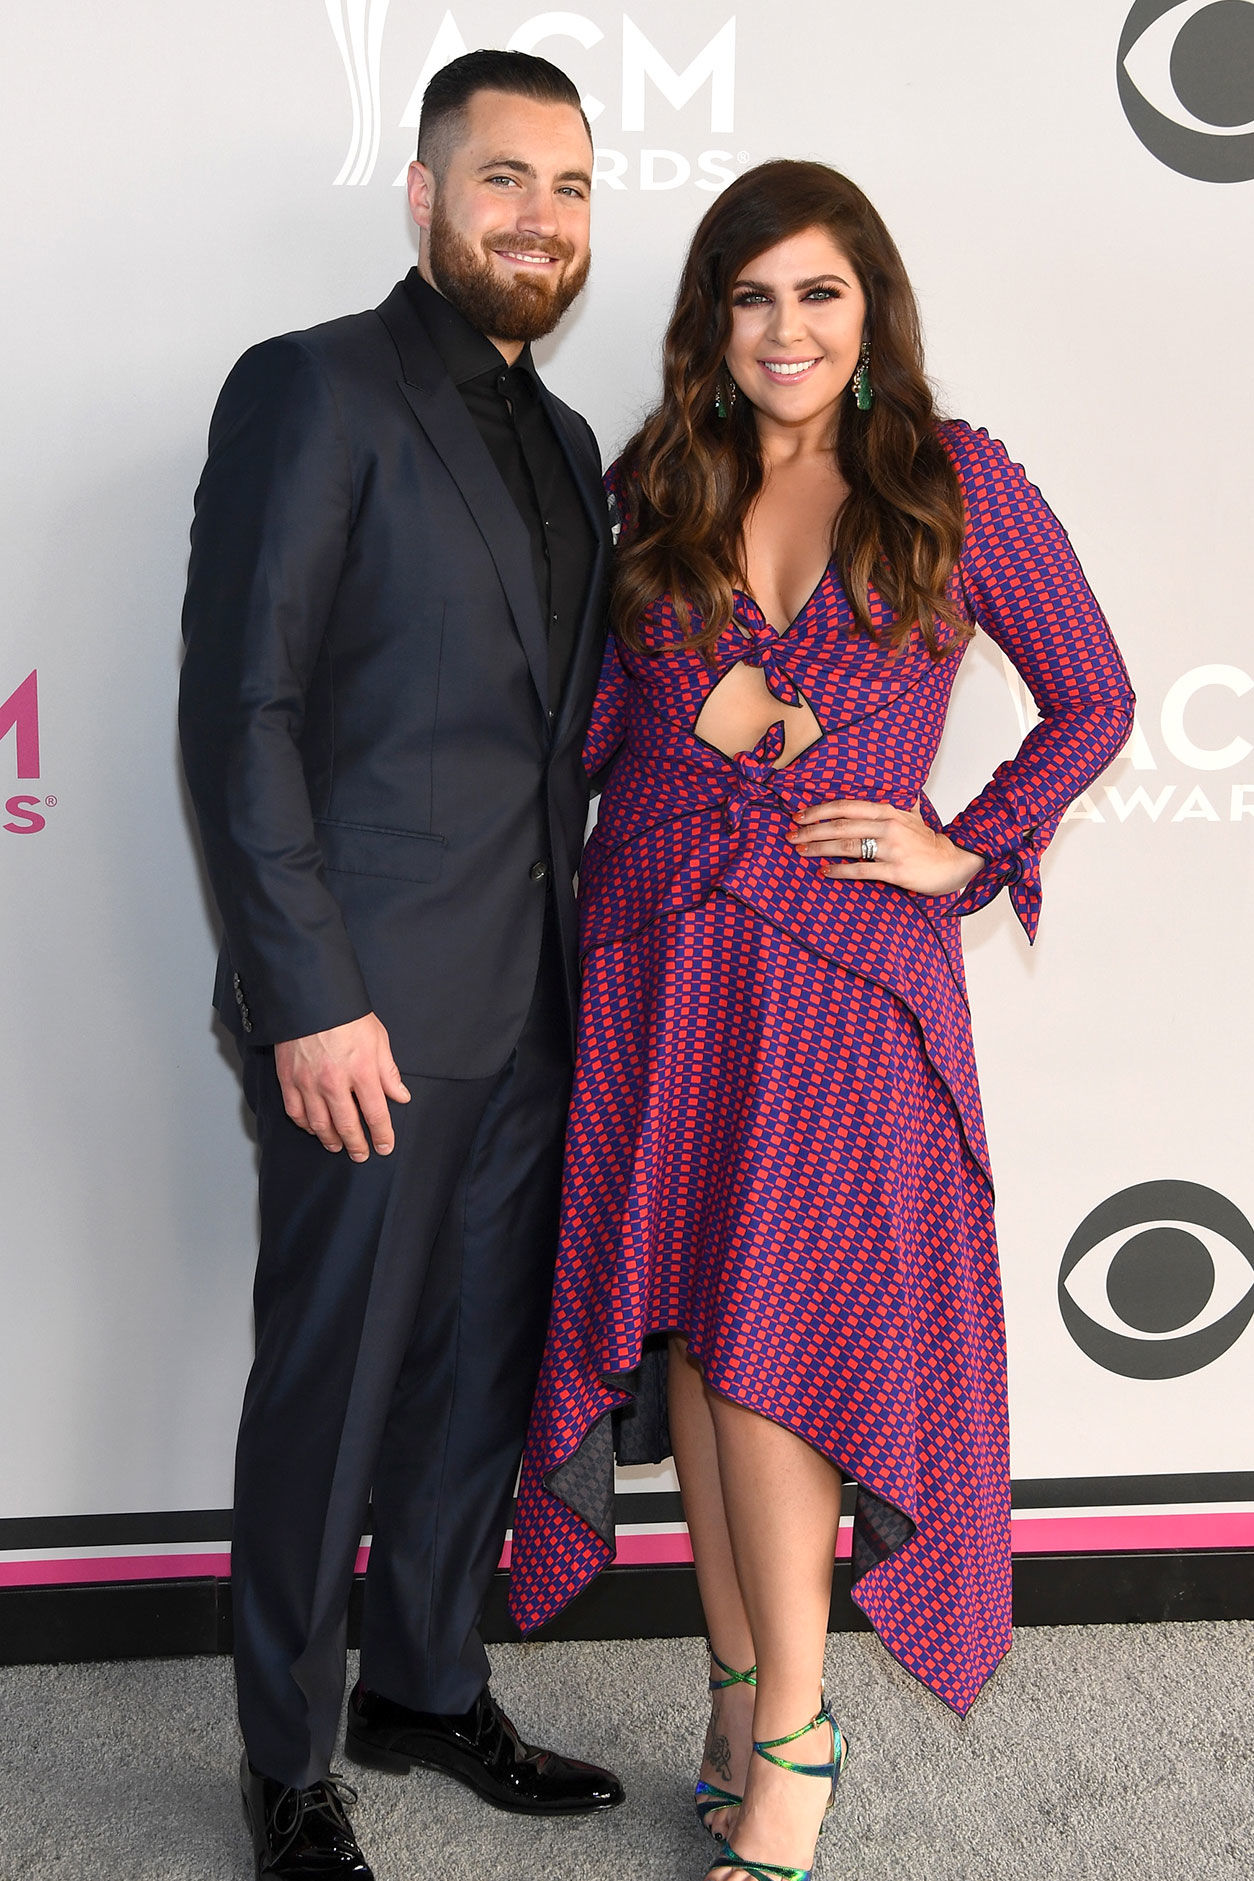 Lady Antebellum's Hillary Scott Welcomes Twin Daughters